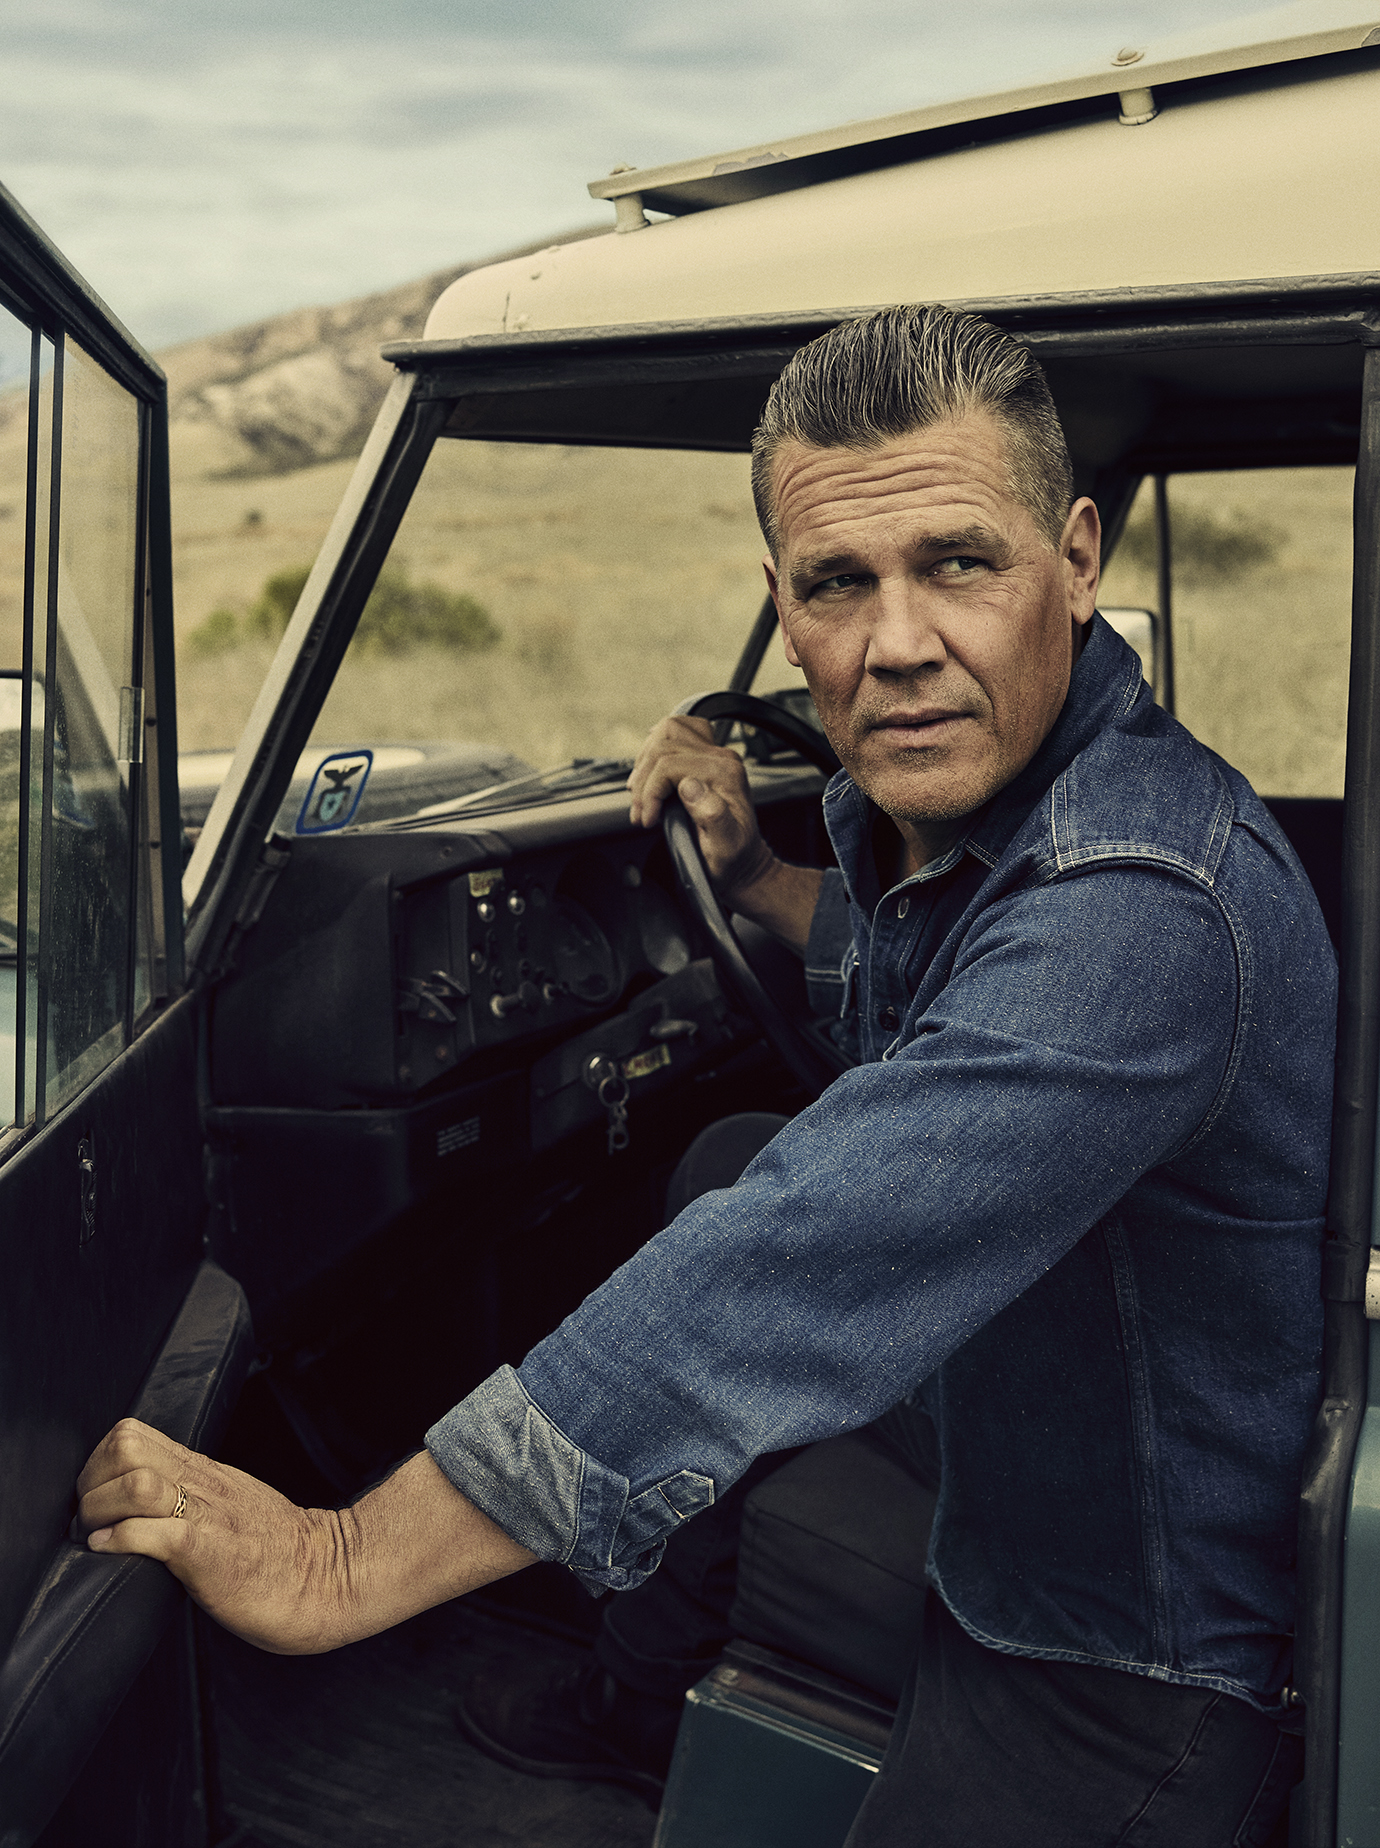 Josh Brolin photographed for the June 2018 issue of Men's Journal.